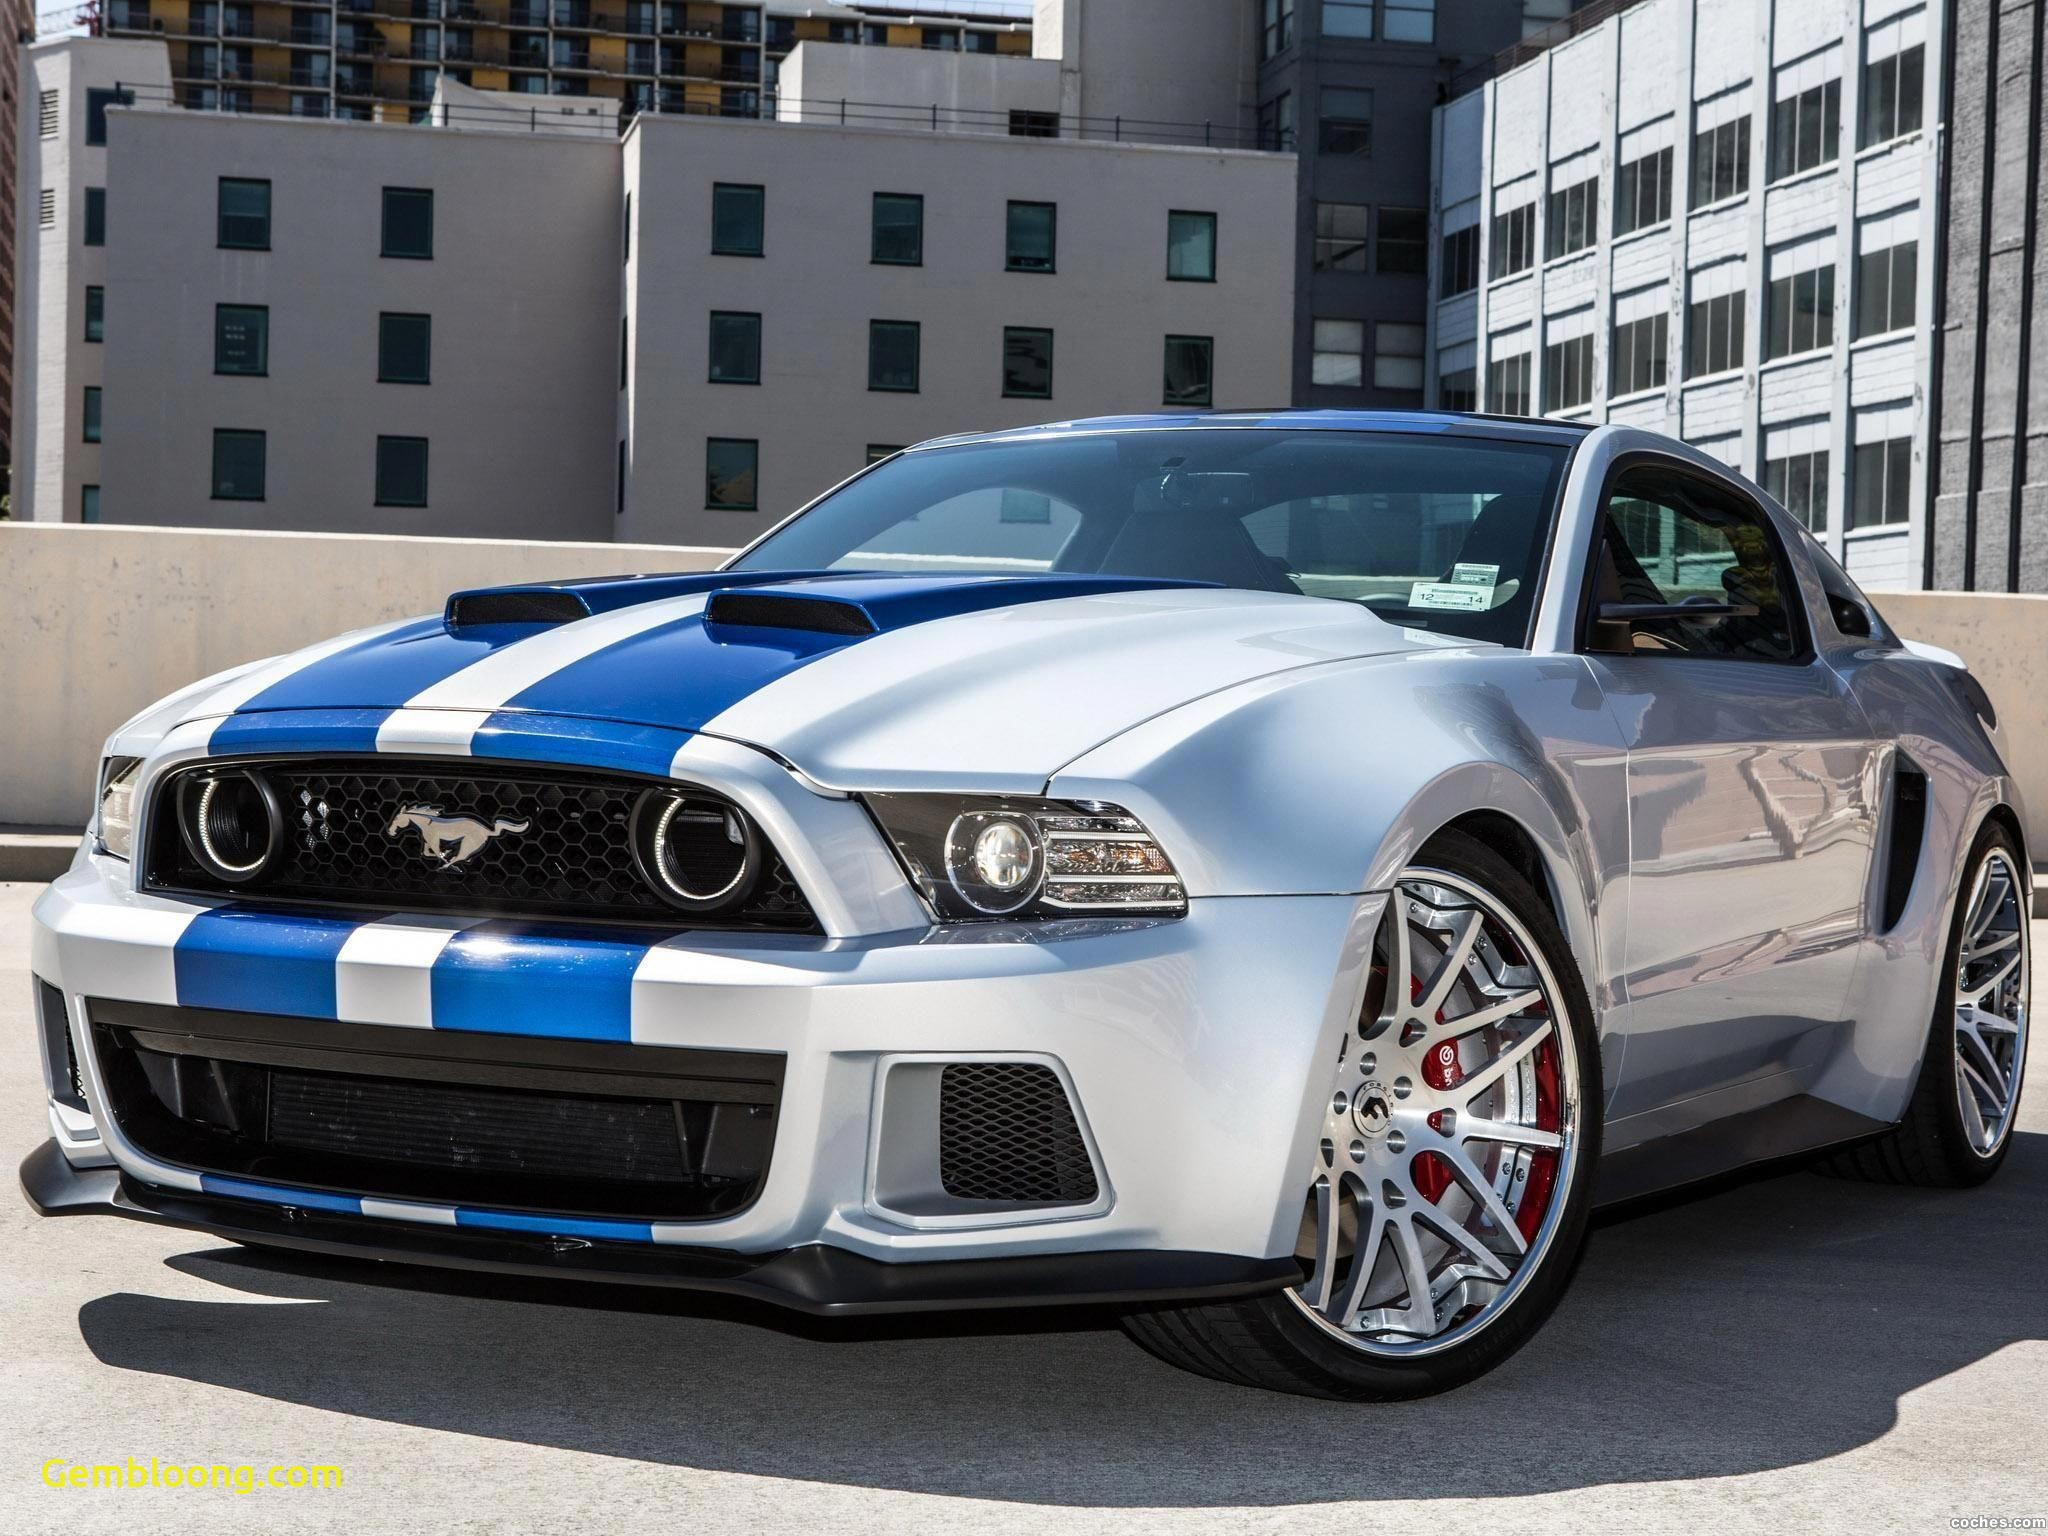 2013 ford Mustang Gt Awesome ford Mustang Hero Custom 2013 Americanmusclecarsford